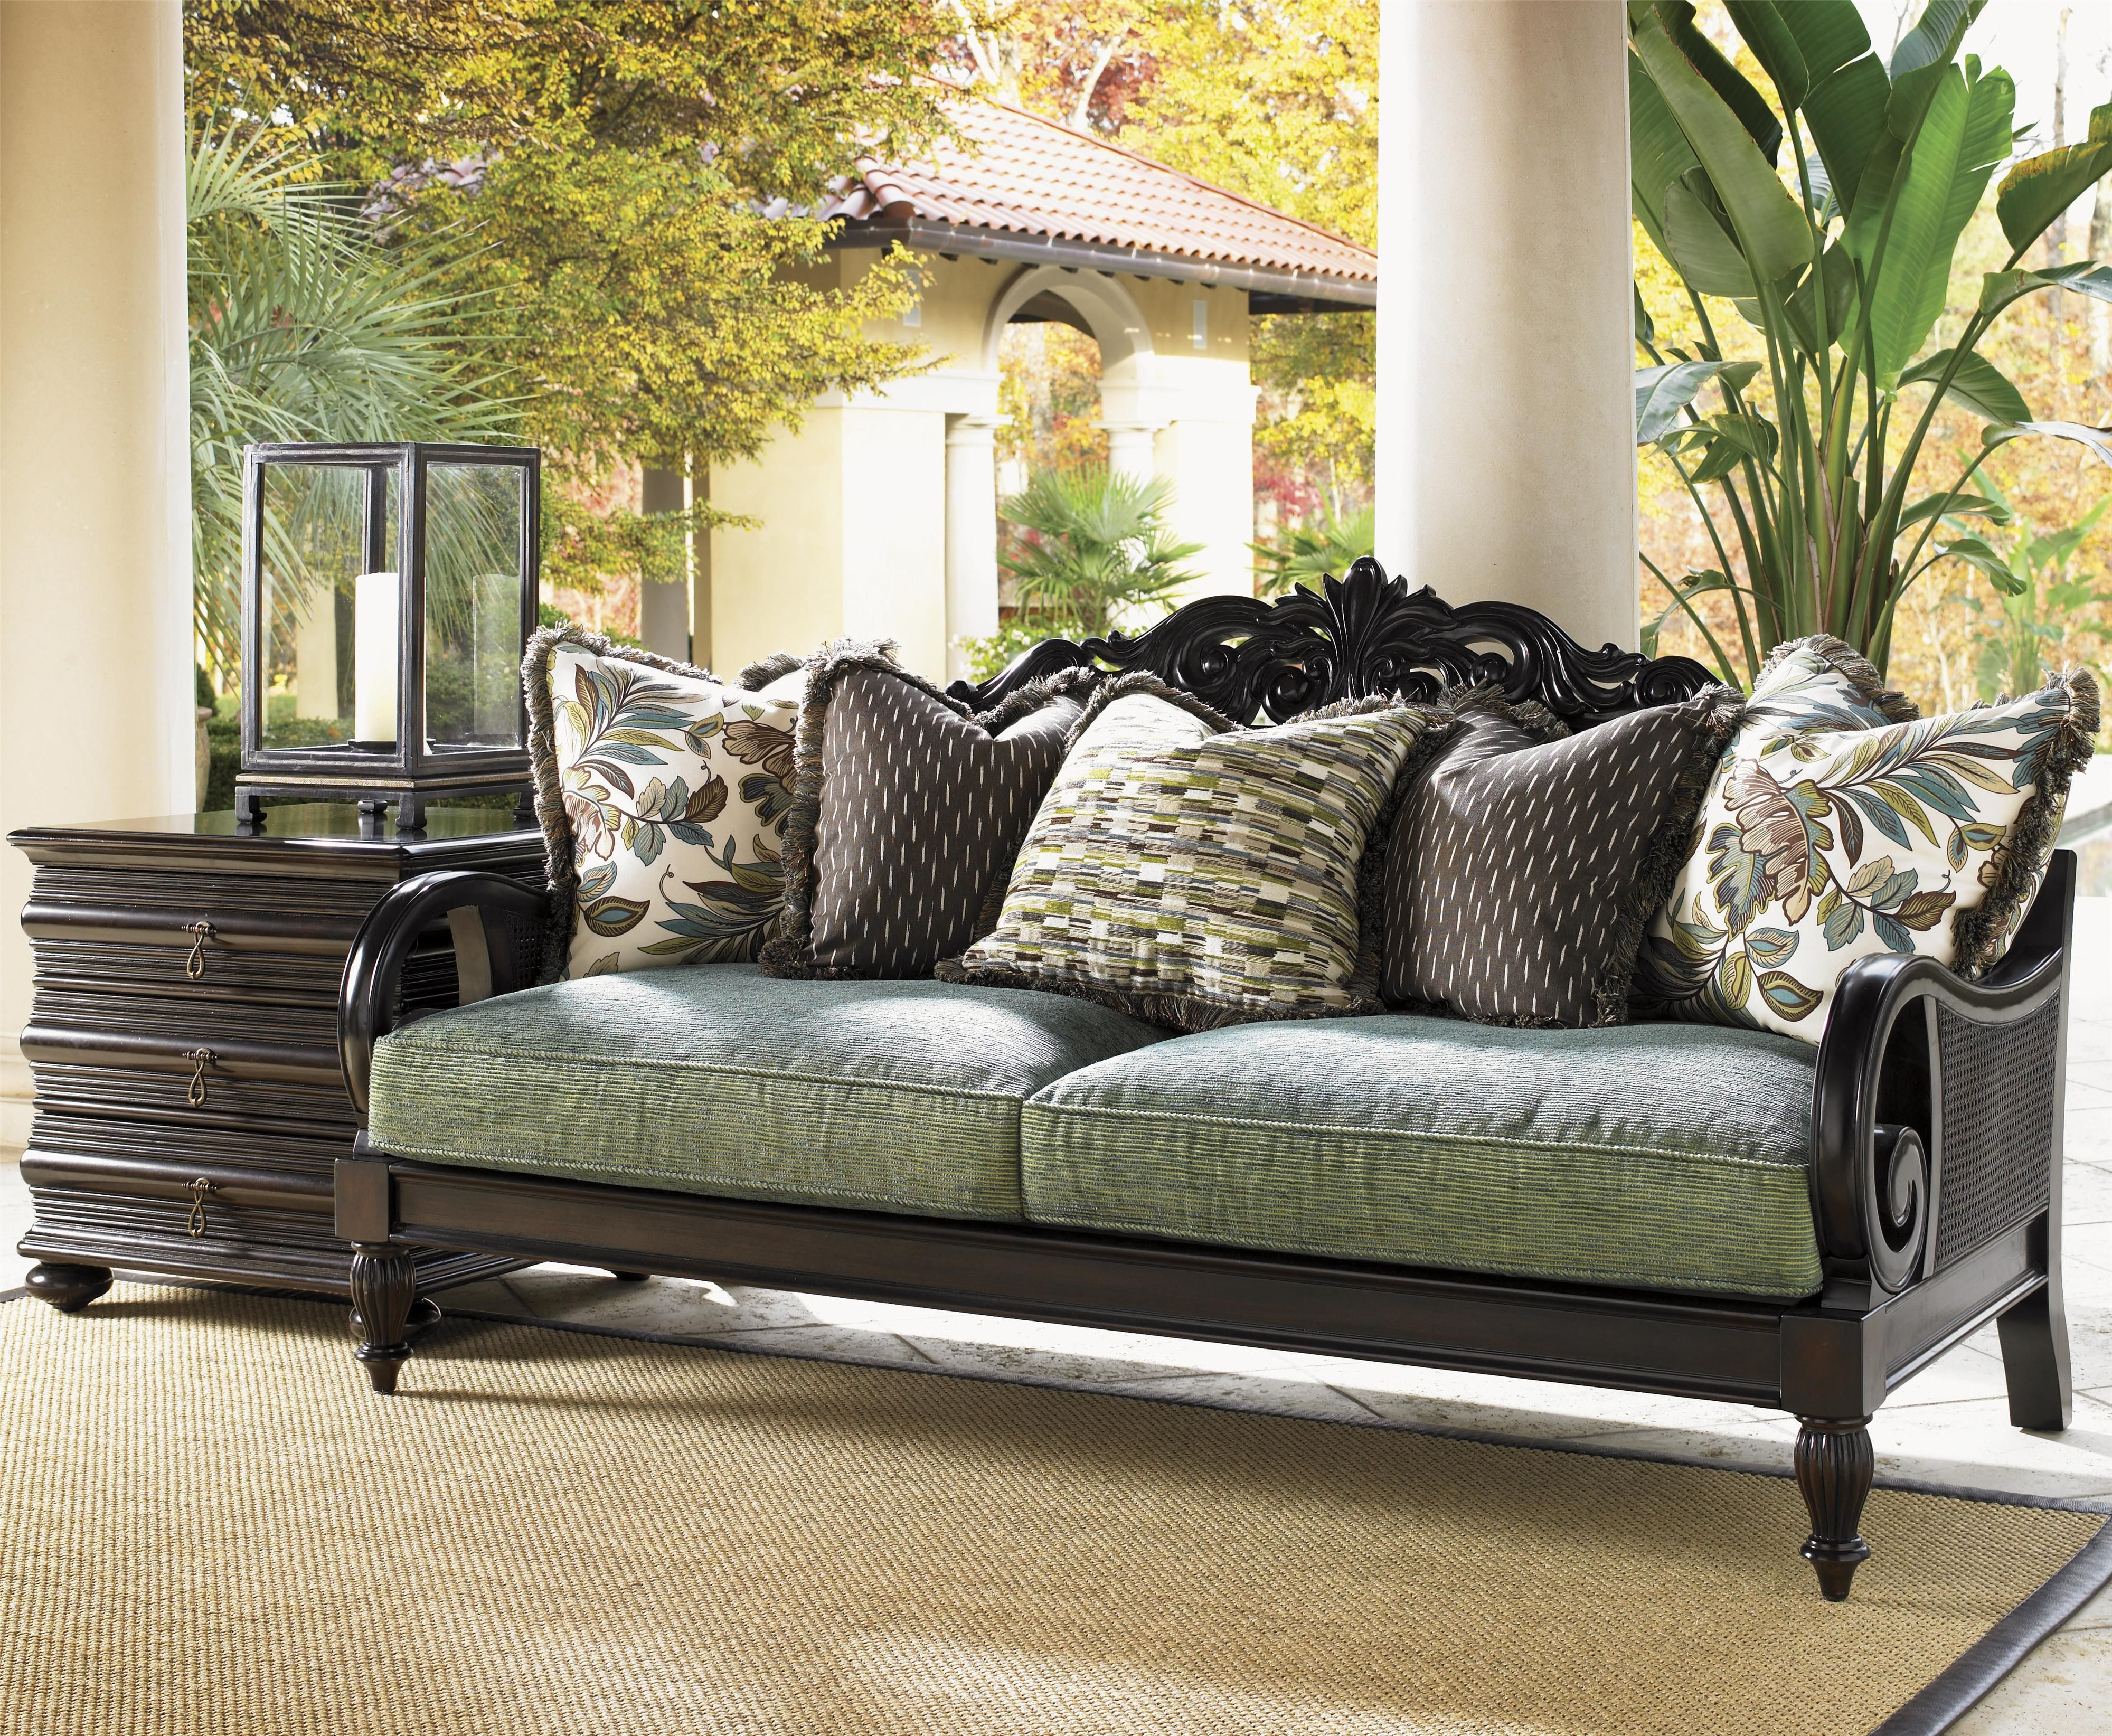 Infuse A Tropical Take On Warm Traditional Style Will Add Island